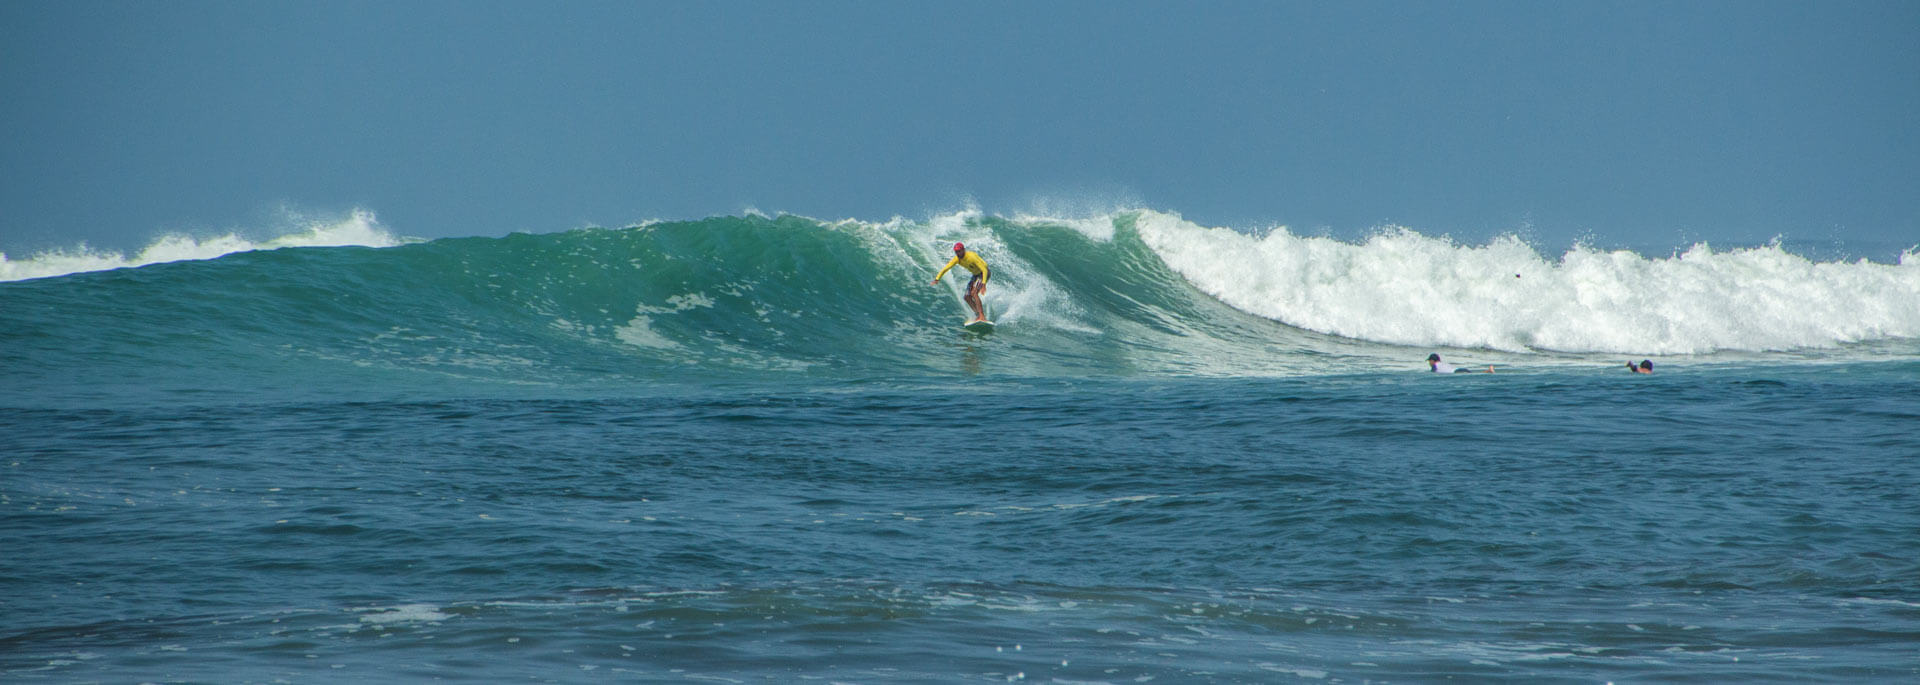 Fotos: Surfin' in El Tunco, El Salvador